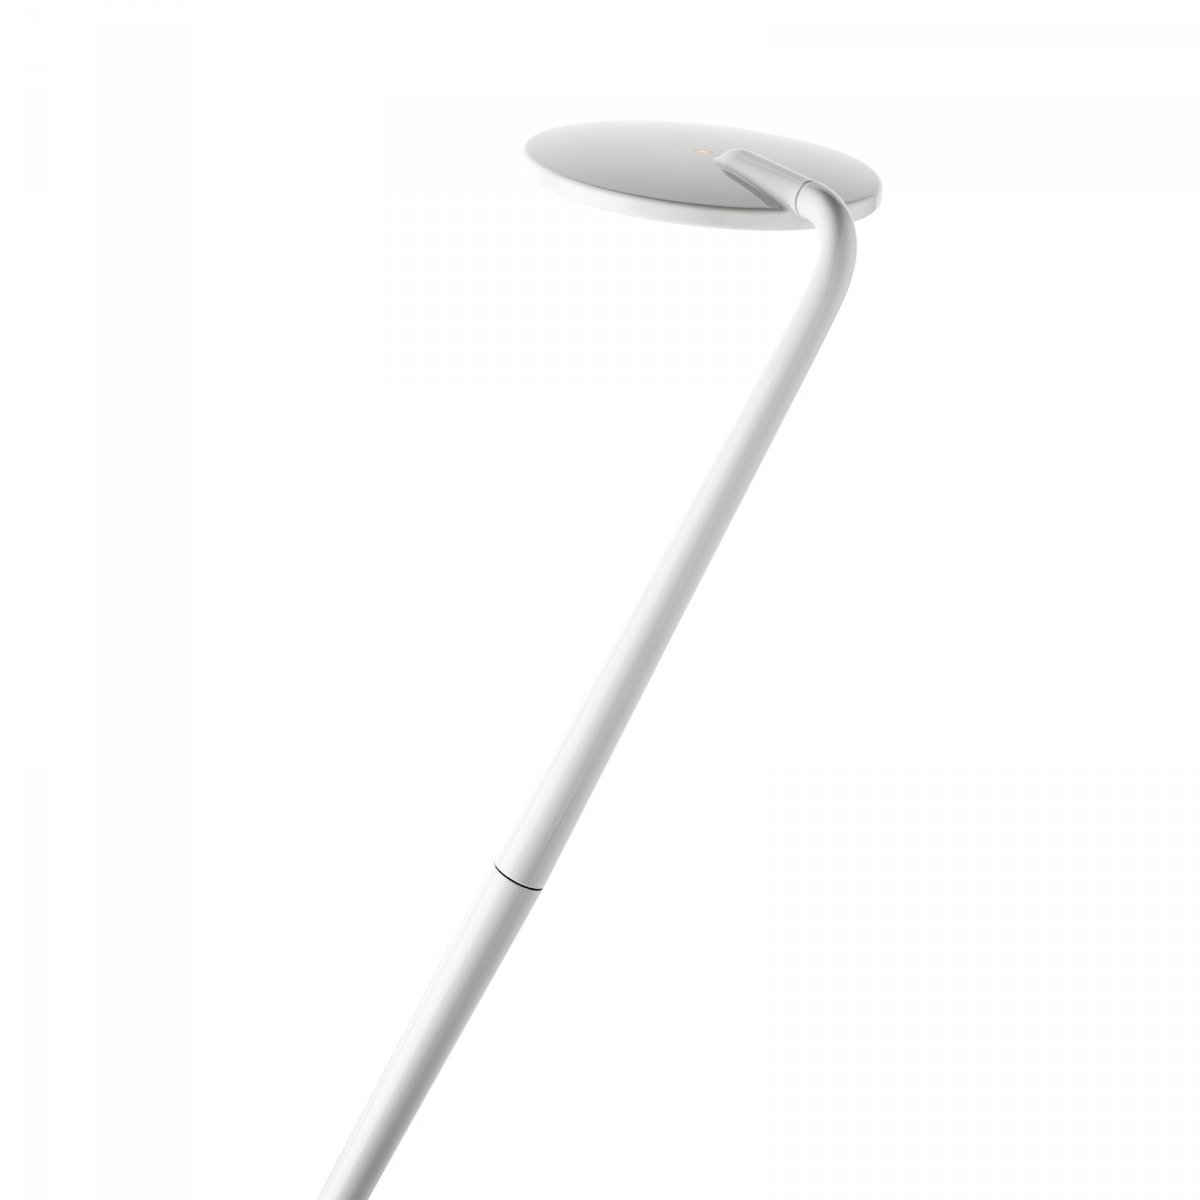 Pixo work lamp, white.